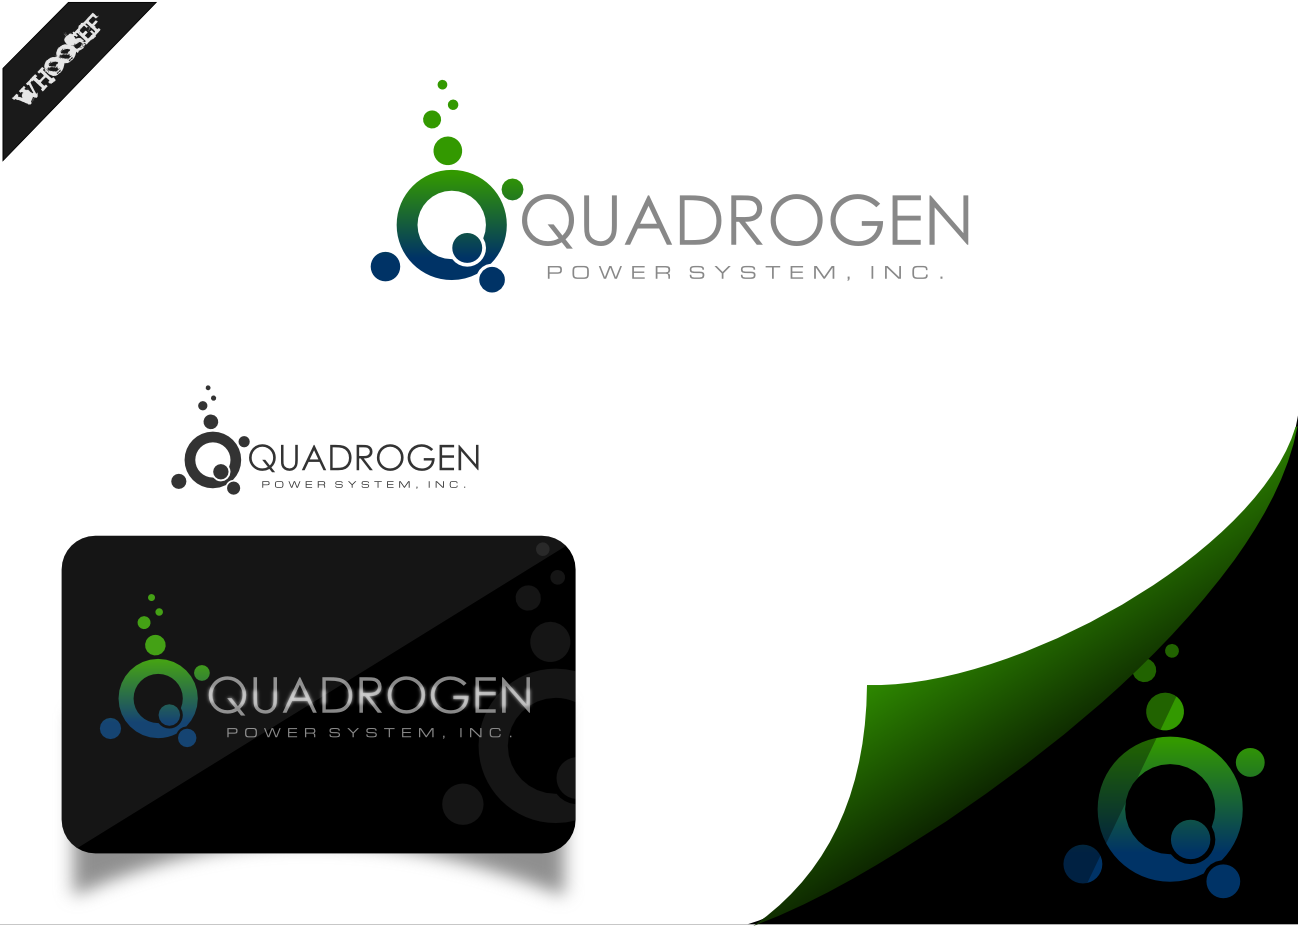 Logo Design by whoosef - Entry No. 38 in the Logo Design Contest New Logo Design for Quadrogen Power Systems, Inc.